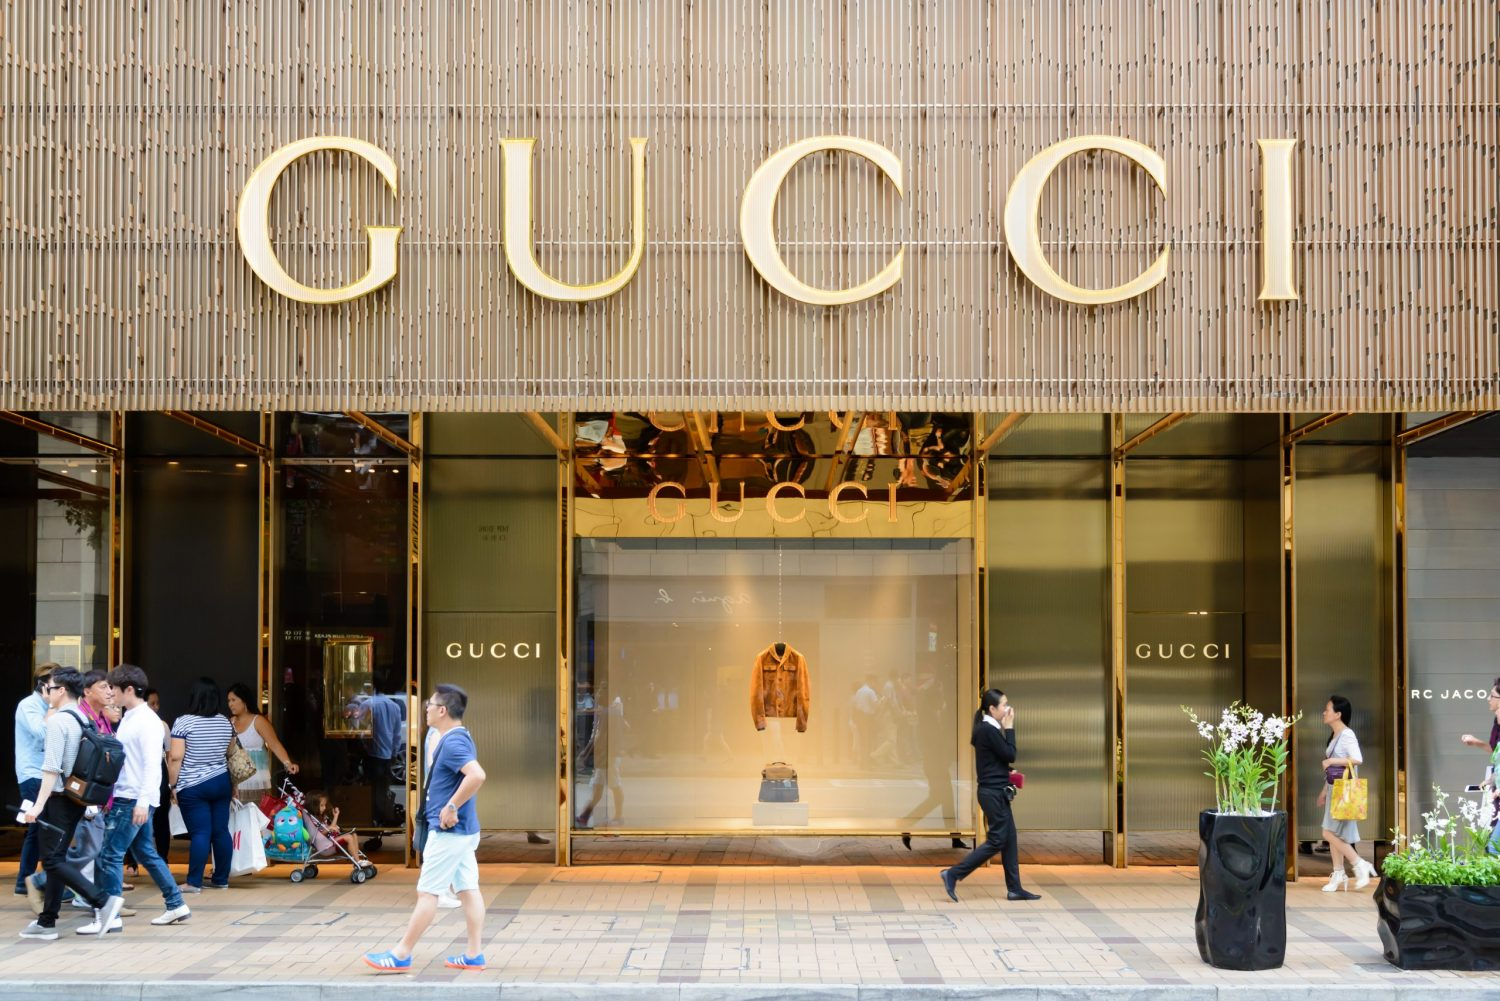 Gucci, other luxury fashion brands are poised to launch NFTs: Report